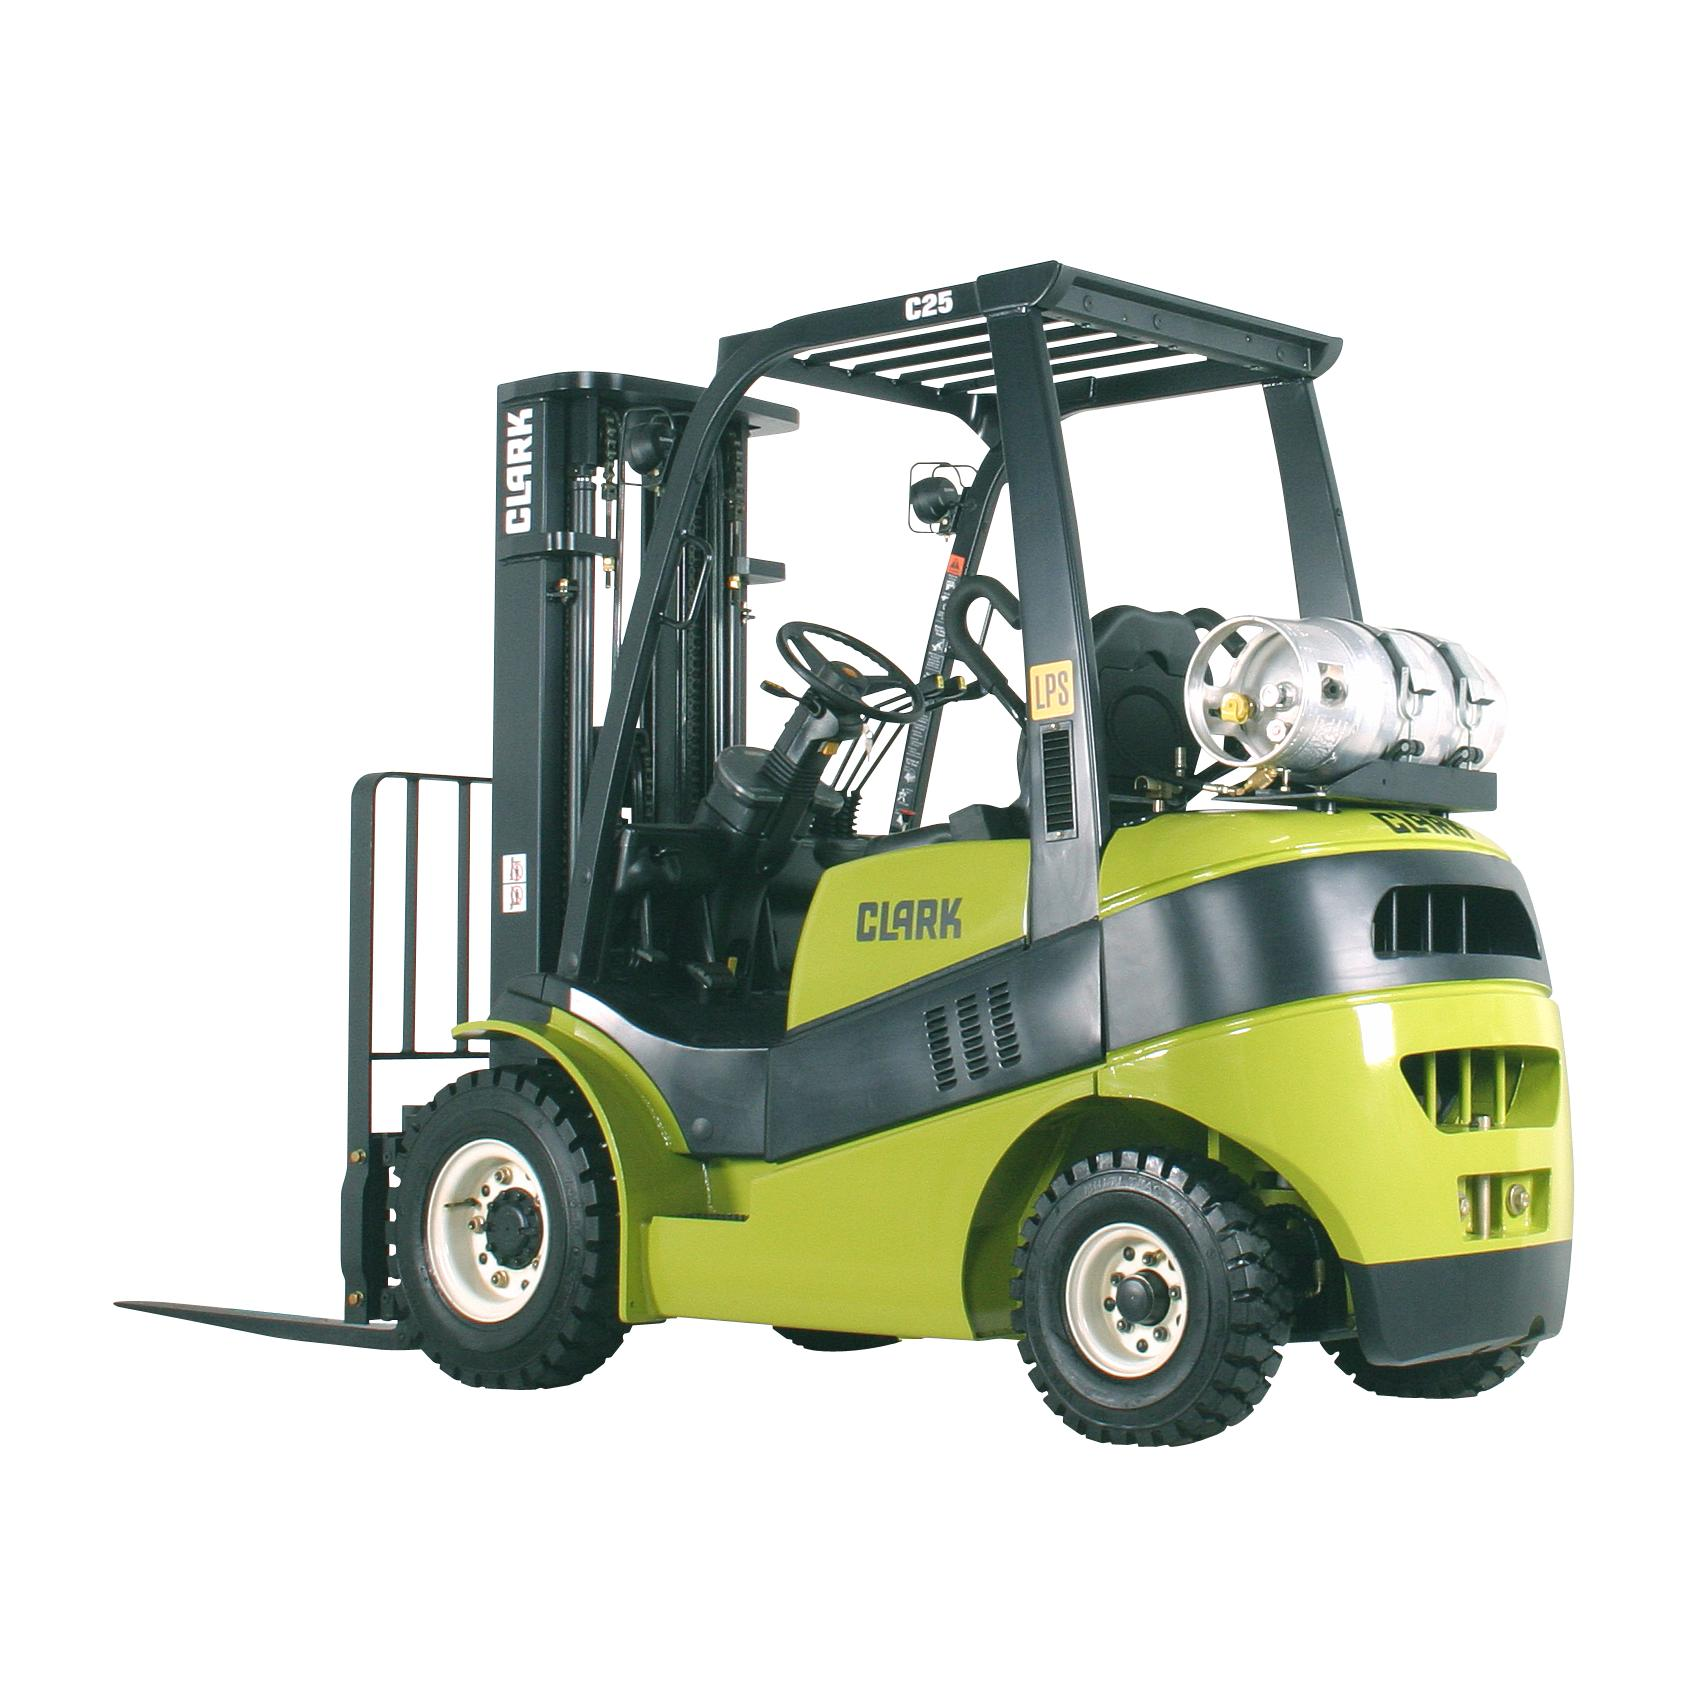 Clark forklift photo - 4